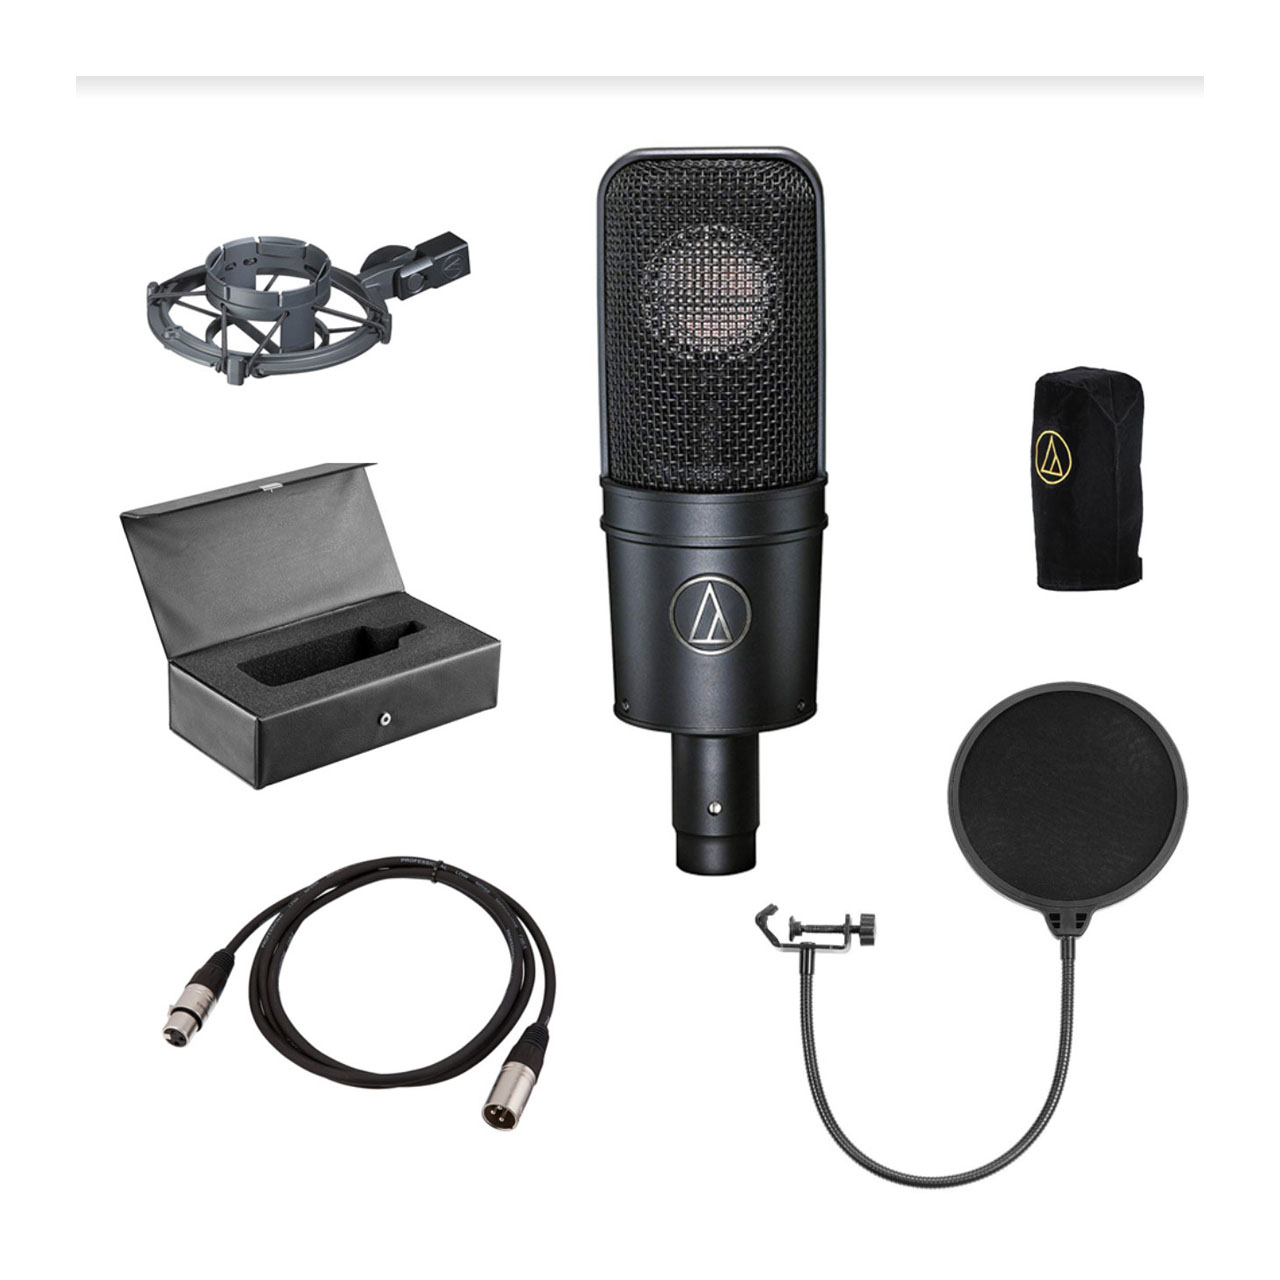 Audio-Technica AT4040 Cardioid Condenser Microphone + XLR Cable + Pop Shield + Reflection filter EZEE Bundle